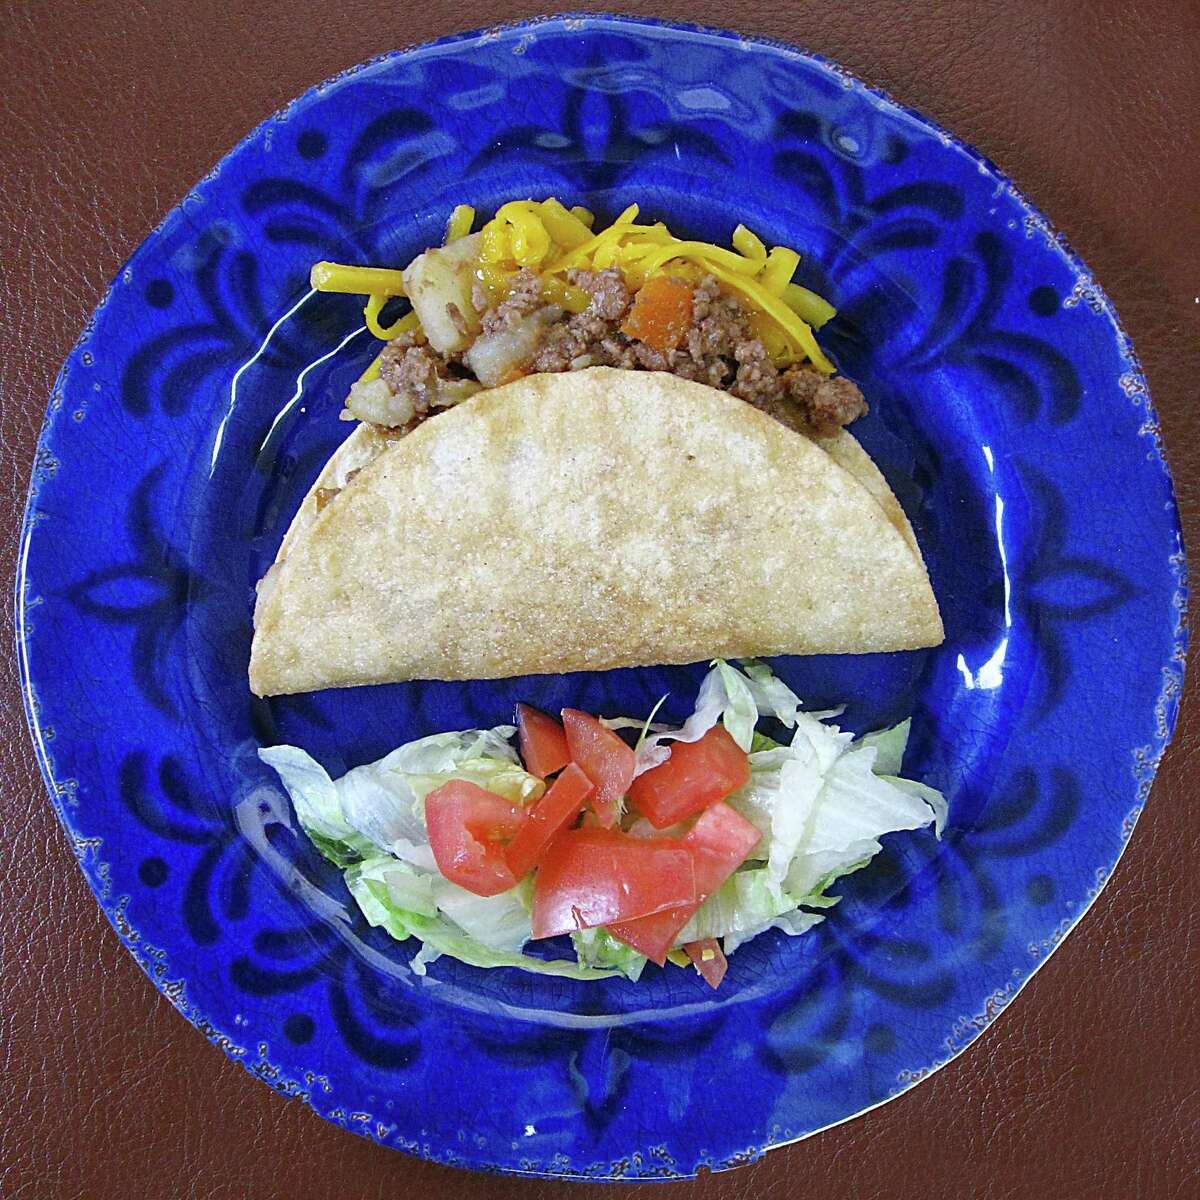 Crispy beef taco from Family Mexican Restaurant.